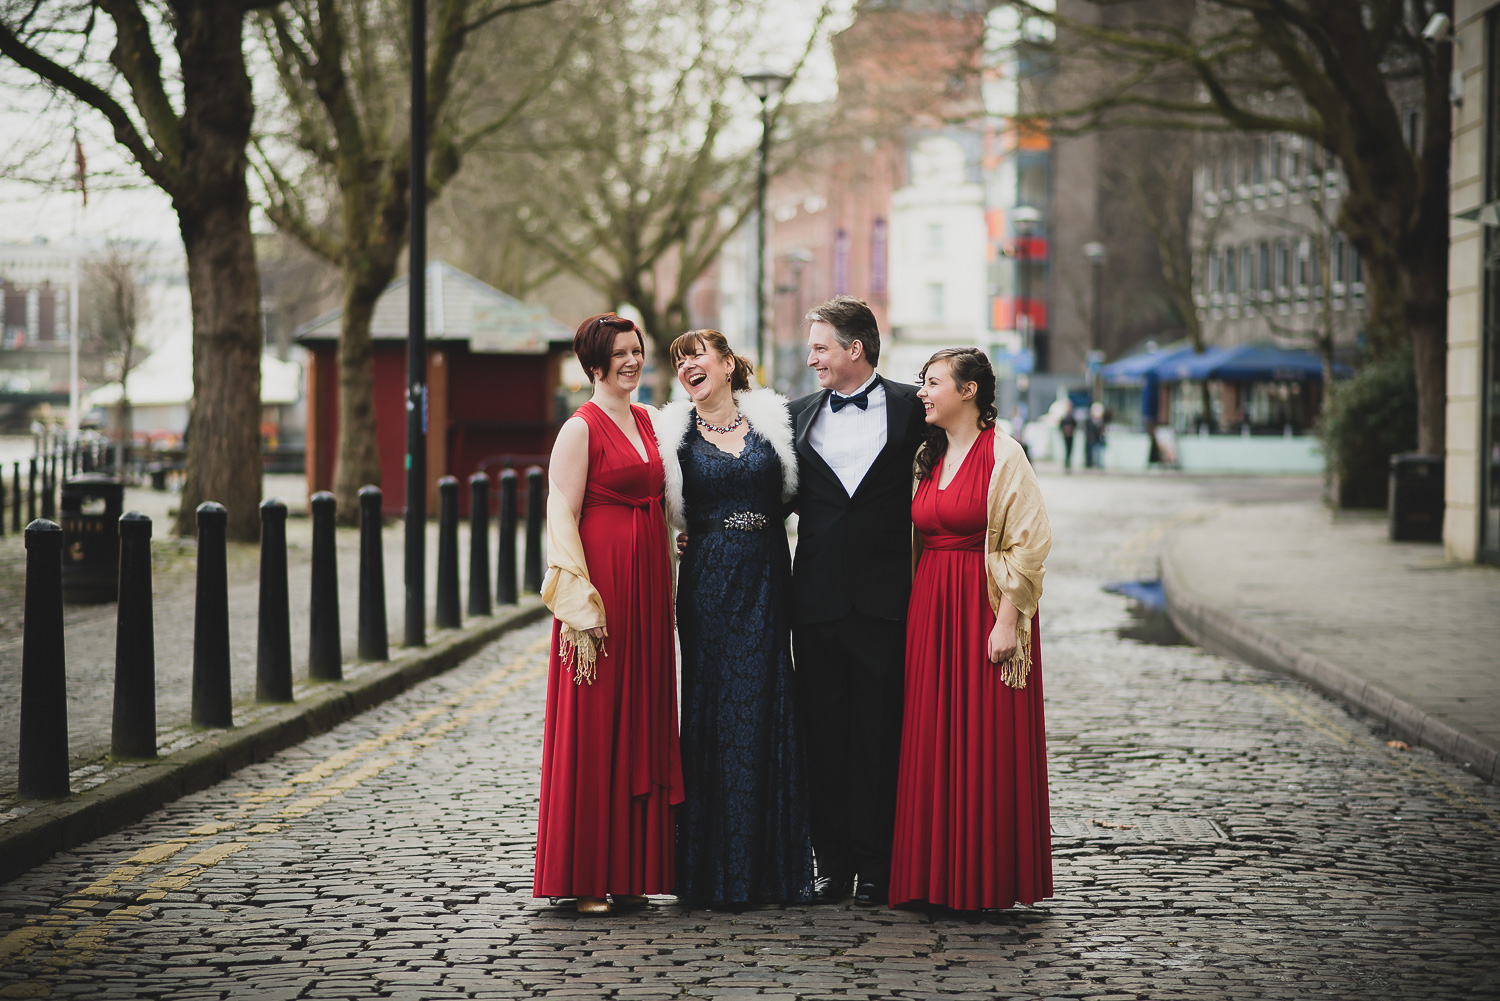 winter wedding group photos in bristol uk